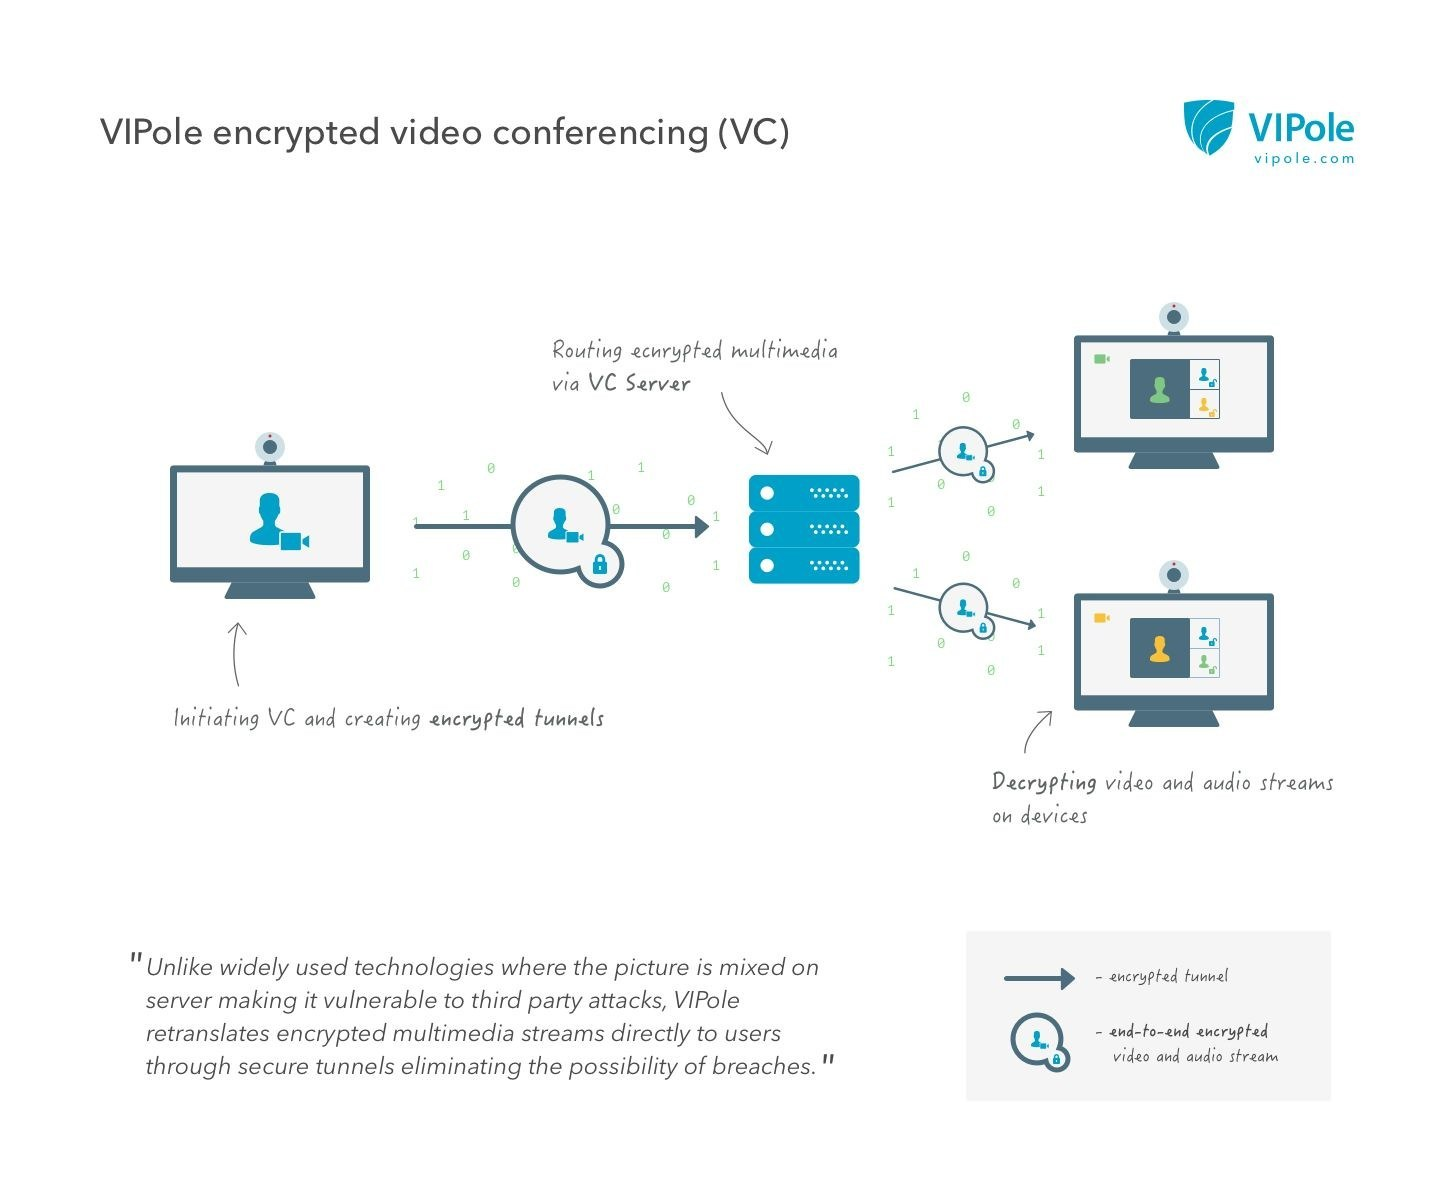 VIPole encrypted video conferencing